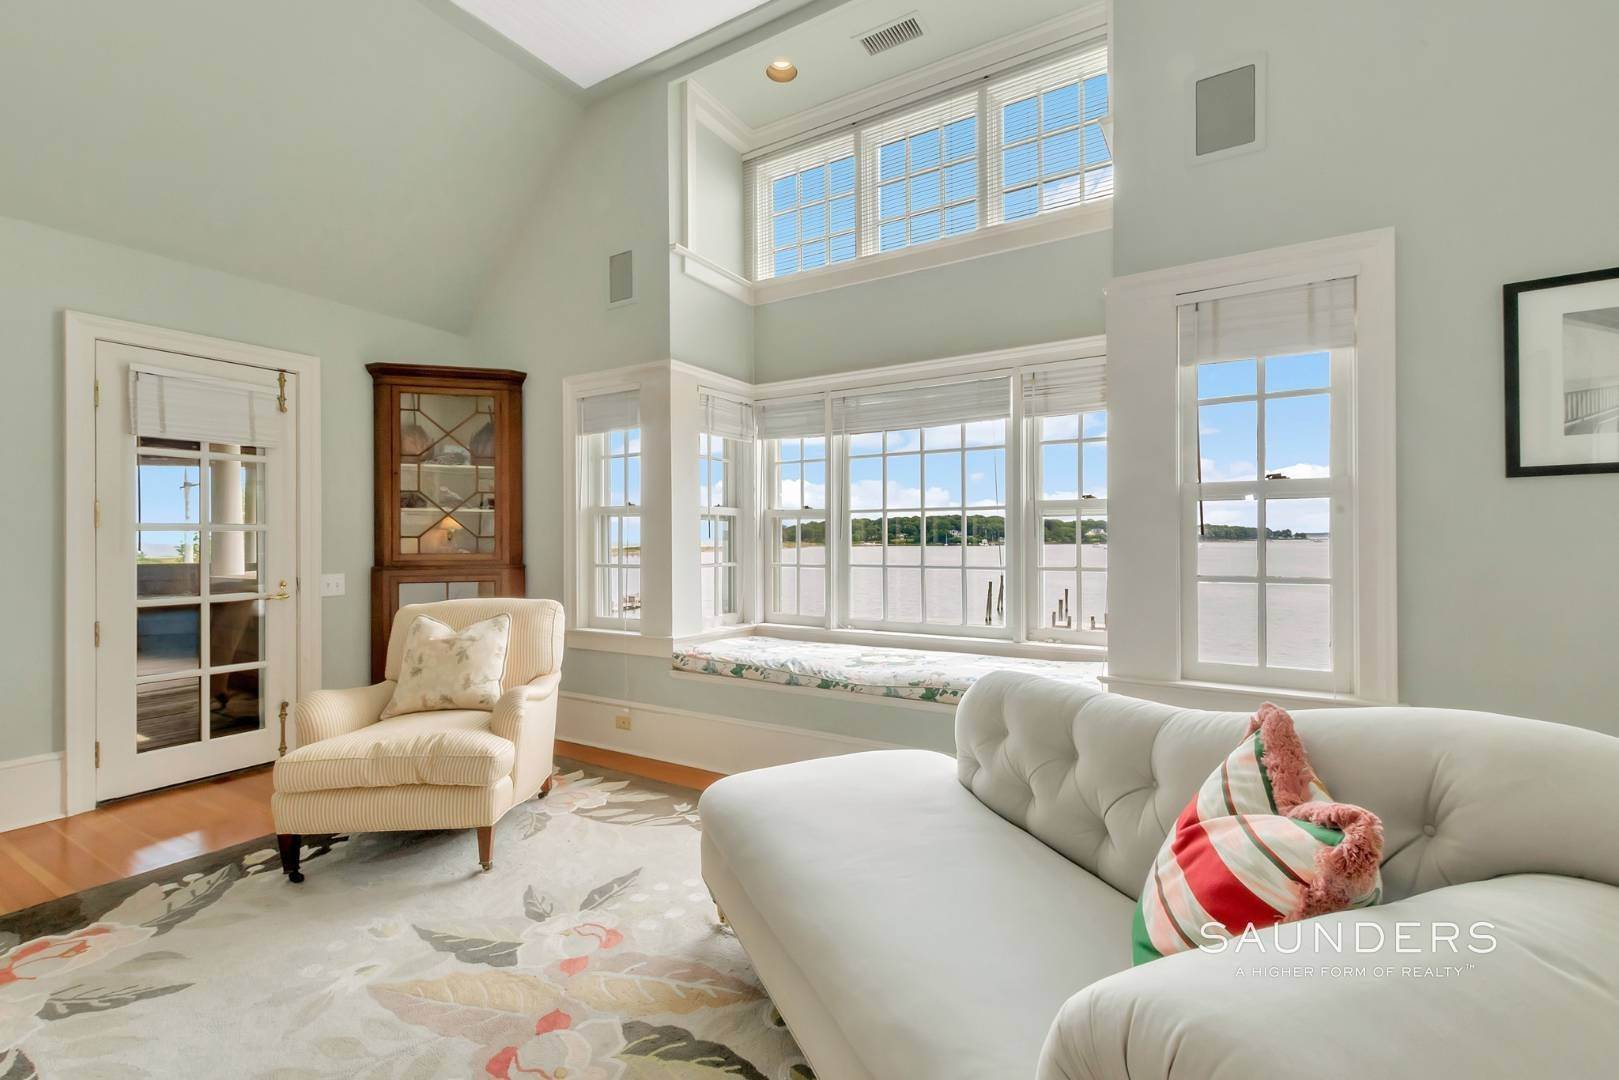 13. Single Family Homes for Sale at Classic Shelter Island Harborfront With Tennis And Pool 30 Little Ram Island Drive, Shelter Island Heights, Shelter Island, NY 11964